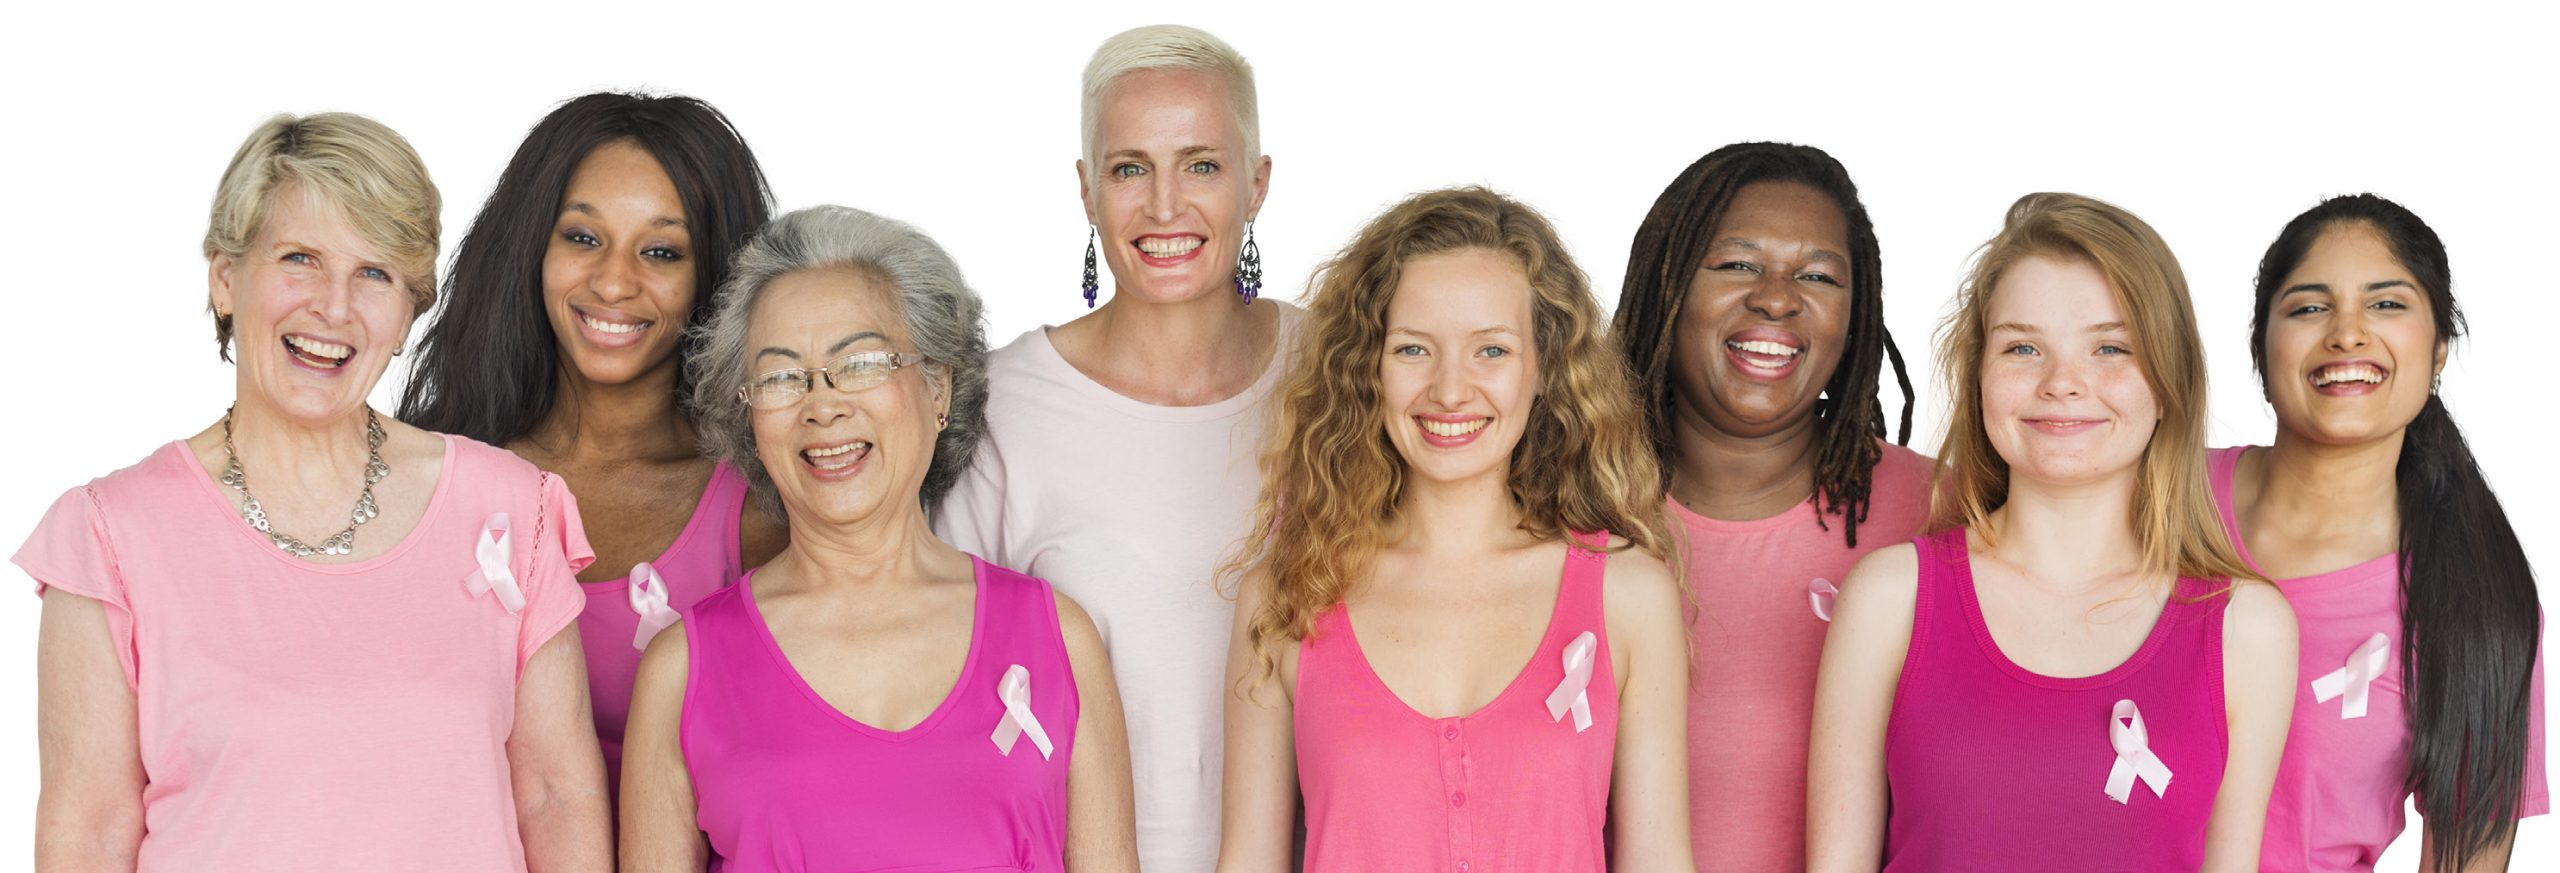 group of women all dressed in pink.